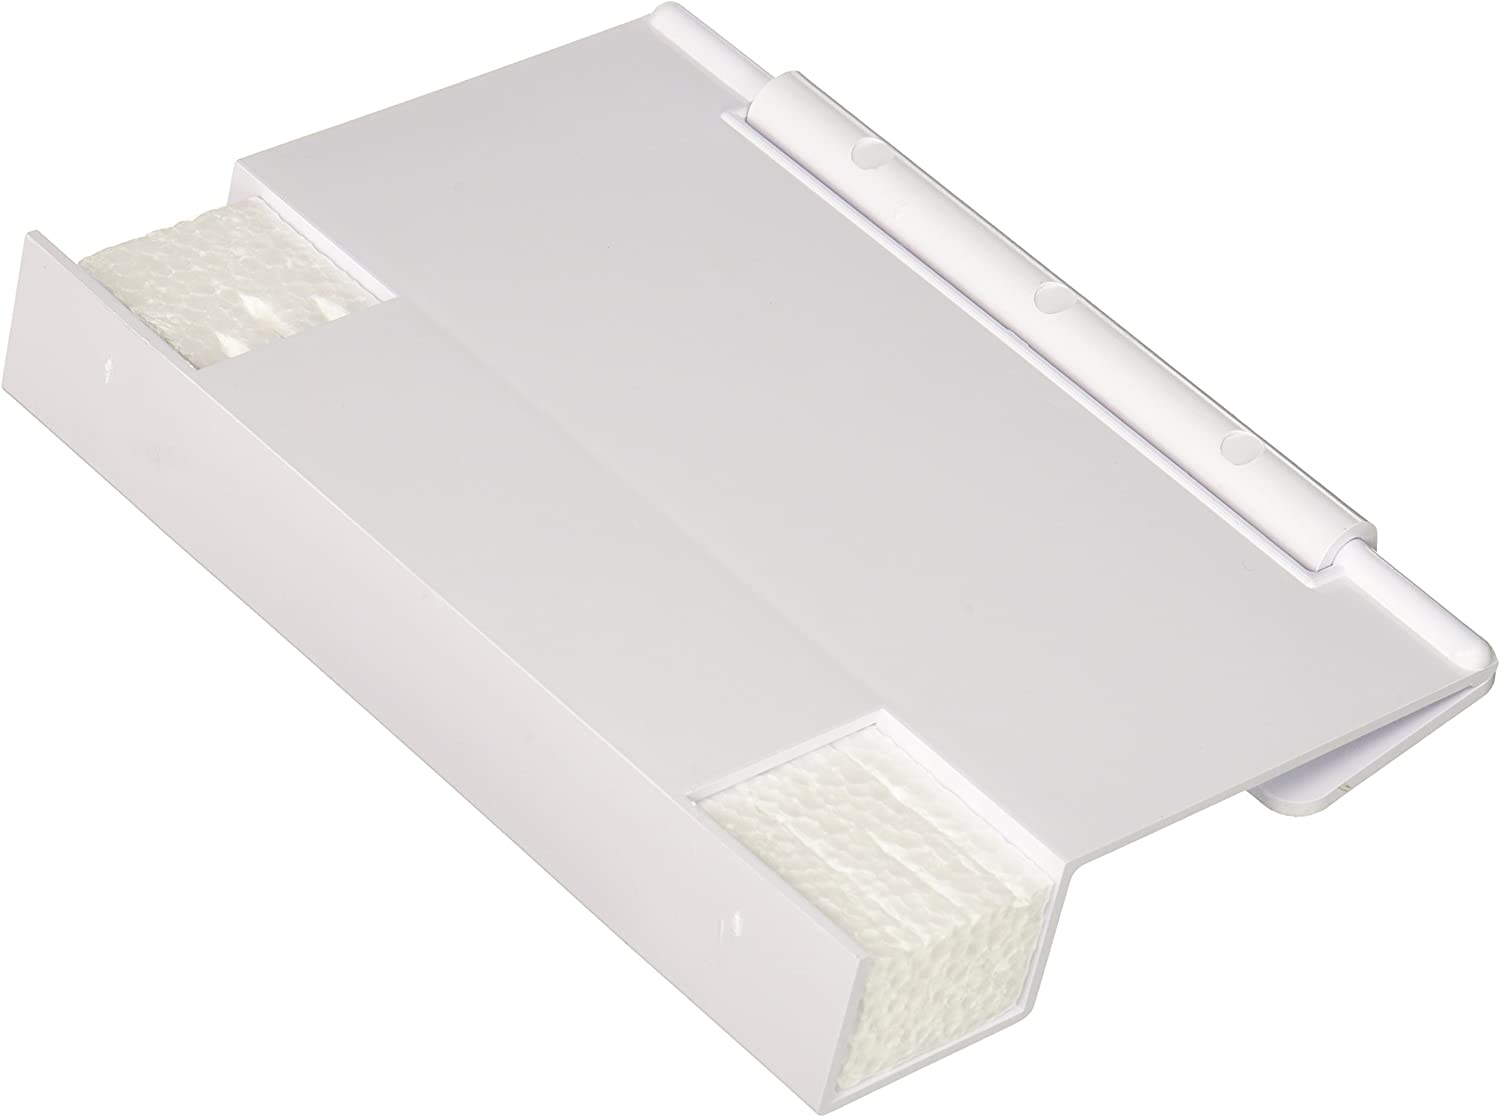 Pentair 513027 Weir Assembly Replacement SkimClean Pool and Spa Skimmer